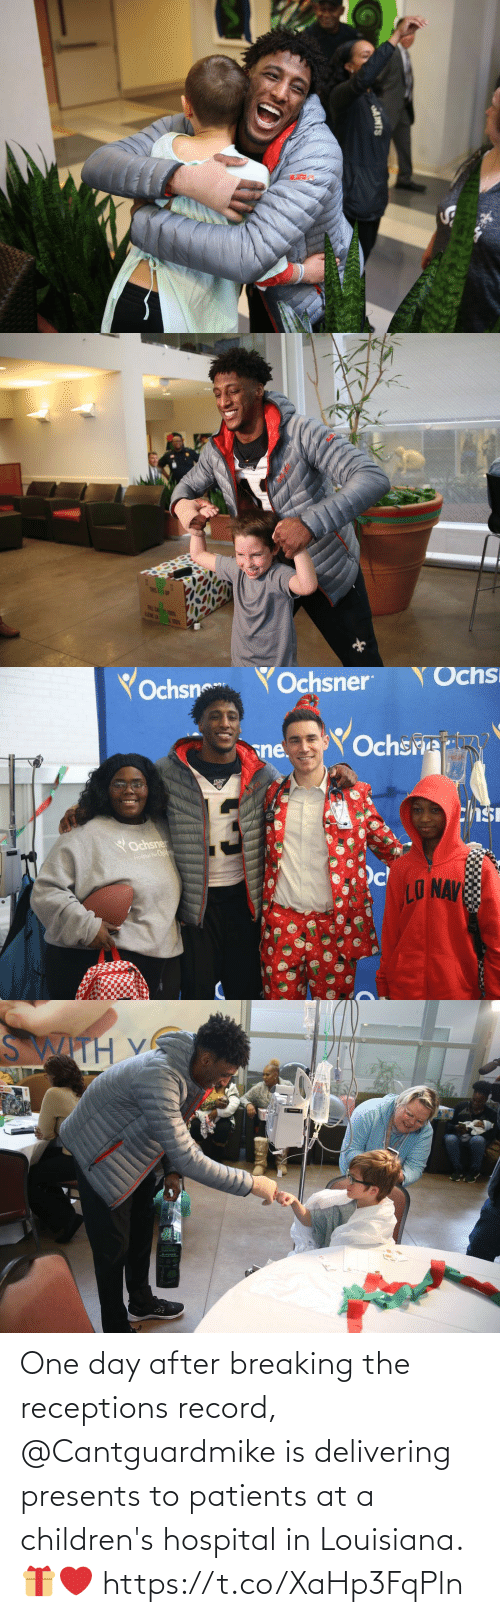 Patients: AINTS   TRIS! 1P  FRLE CA T  LENE LA   Yochsn  YOchsner  Ochs  Ochsre  sne.  chsi  YOchsner  Hospai For Childwan  LO NAV   SWITH V One day after breaking the receptions record, @Cantguardmike is delivering presents to patients at a children's hospital in Louisiana. 🎁❤️ https://t.co/XaHp3FqPln